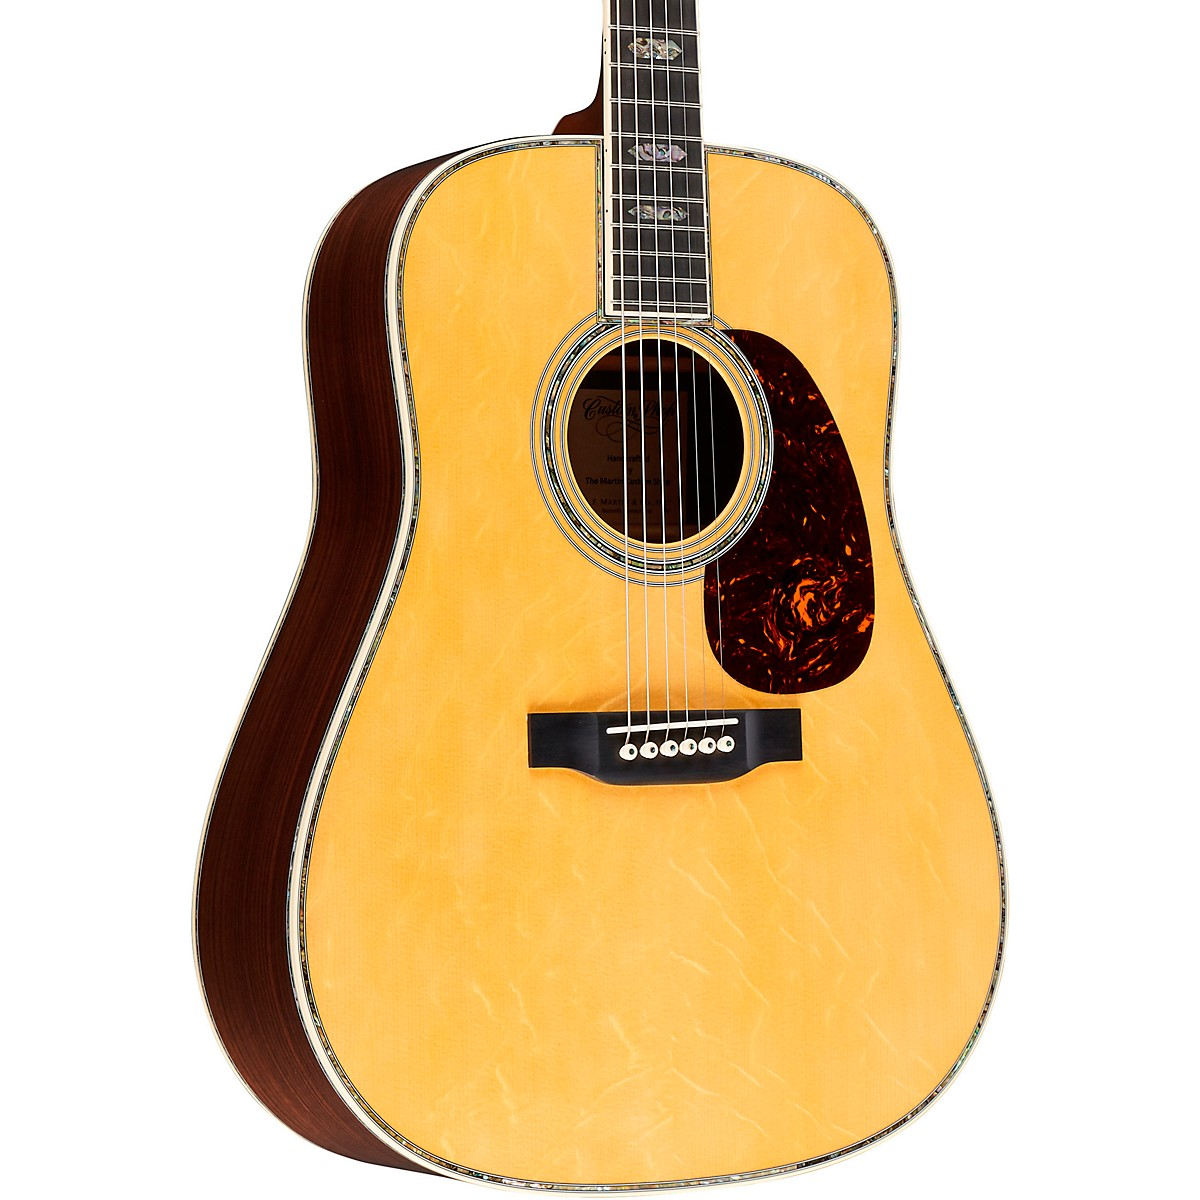 Martin Special 45 Style Englemann Bearclaw Spruce Top Dreadnought Acoustic Guitar